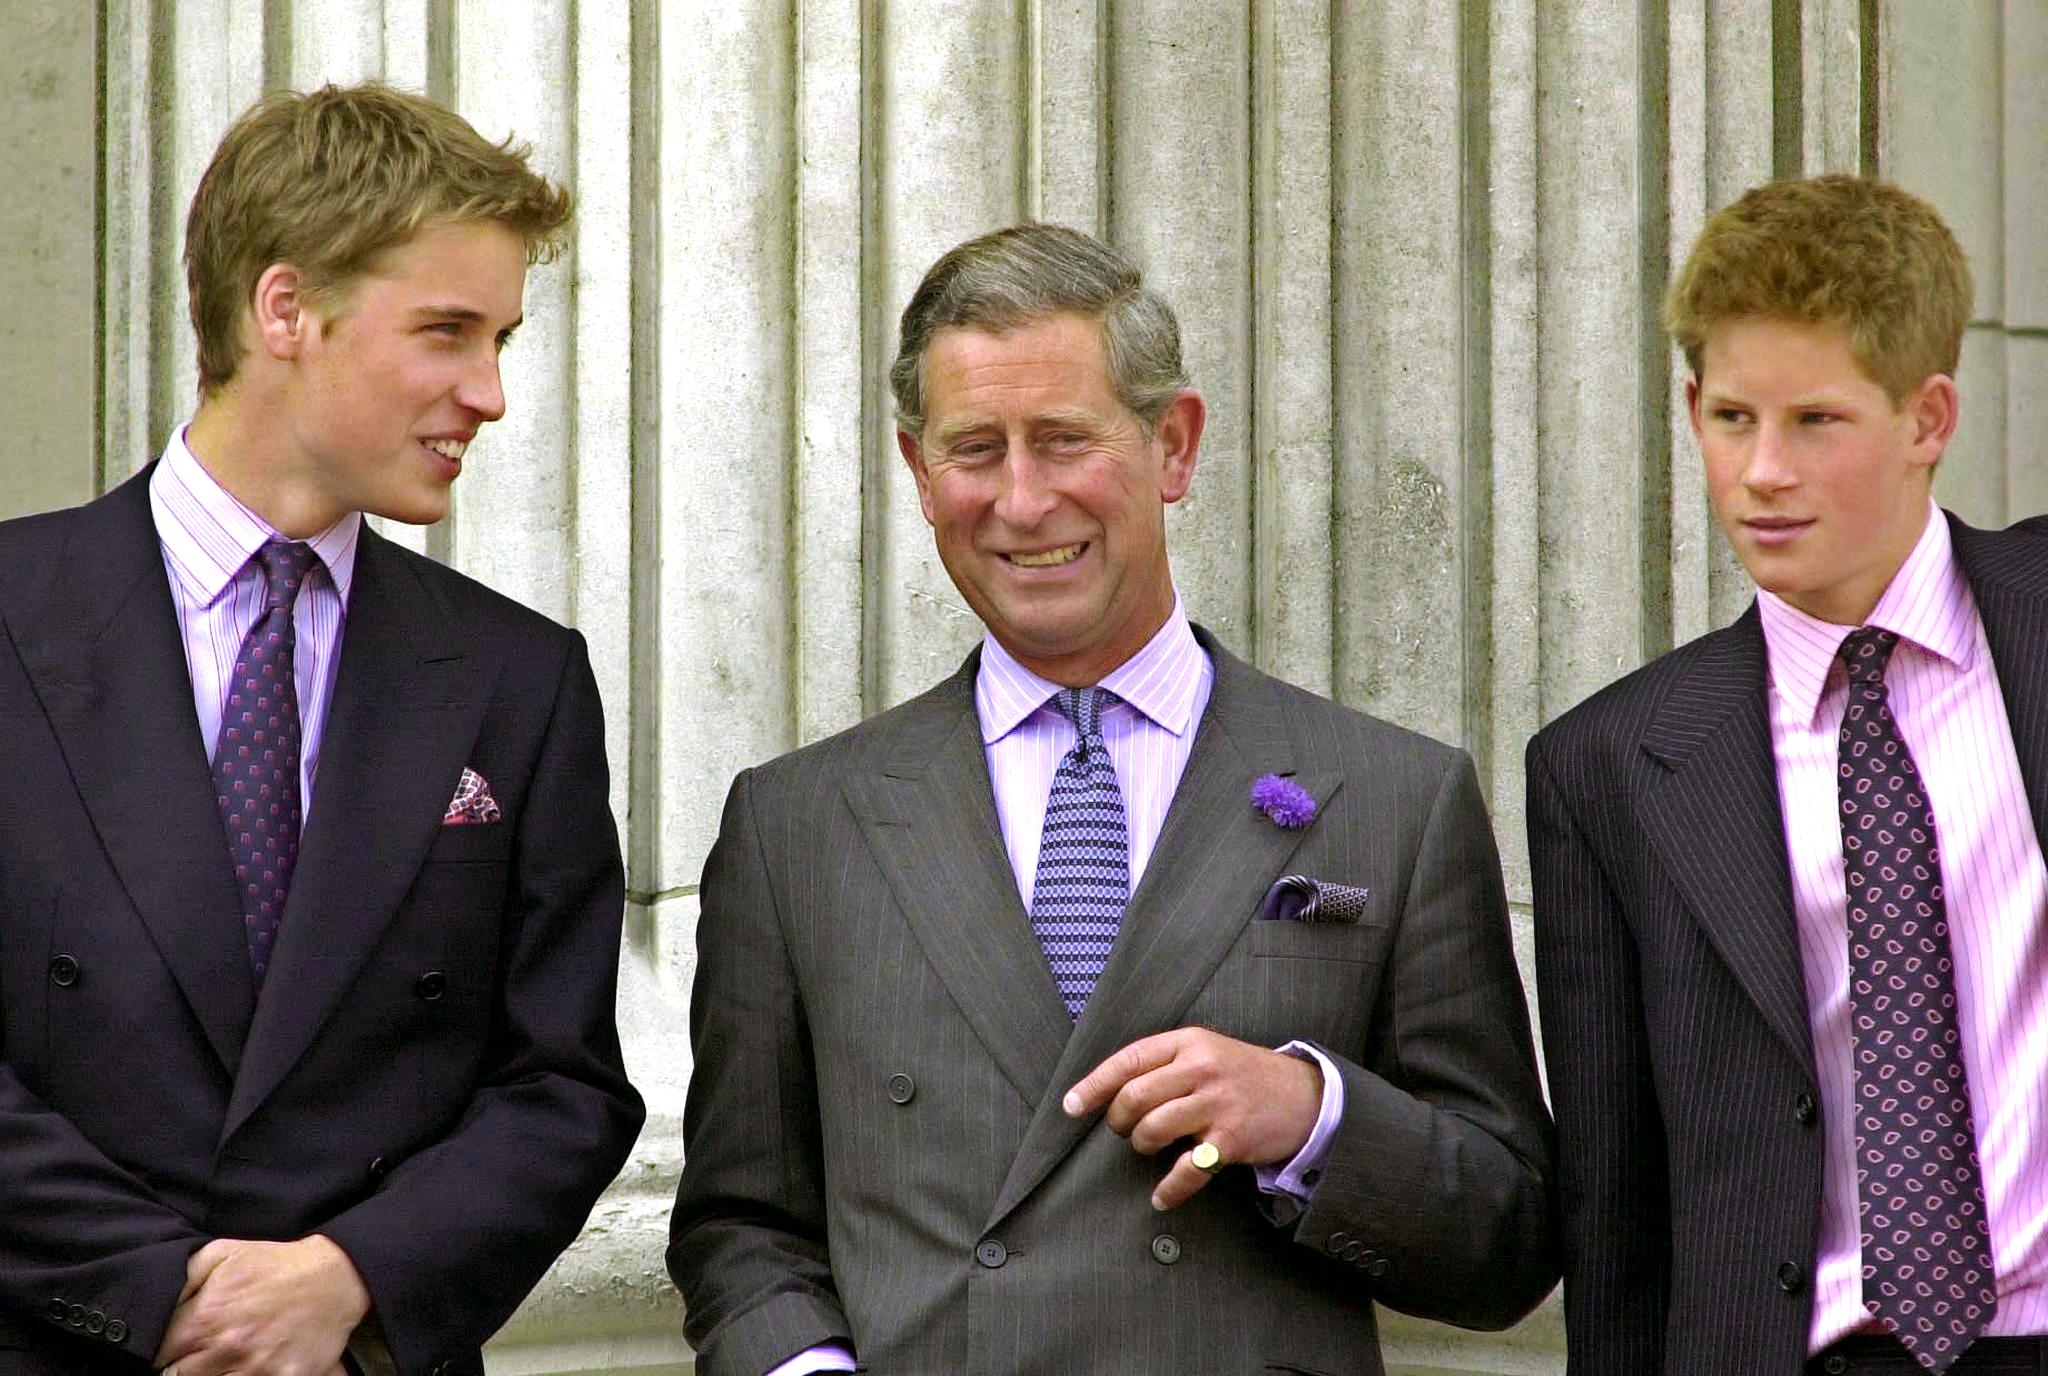 Prince William, Prince of Wales and Prince Harry on the balcony of Buckingham Palace 04 August 2000